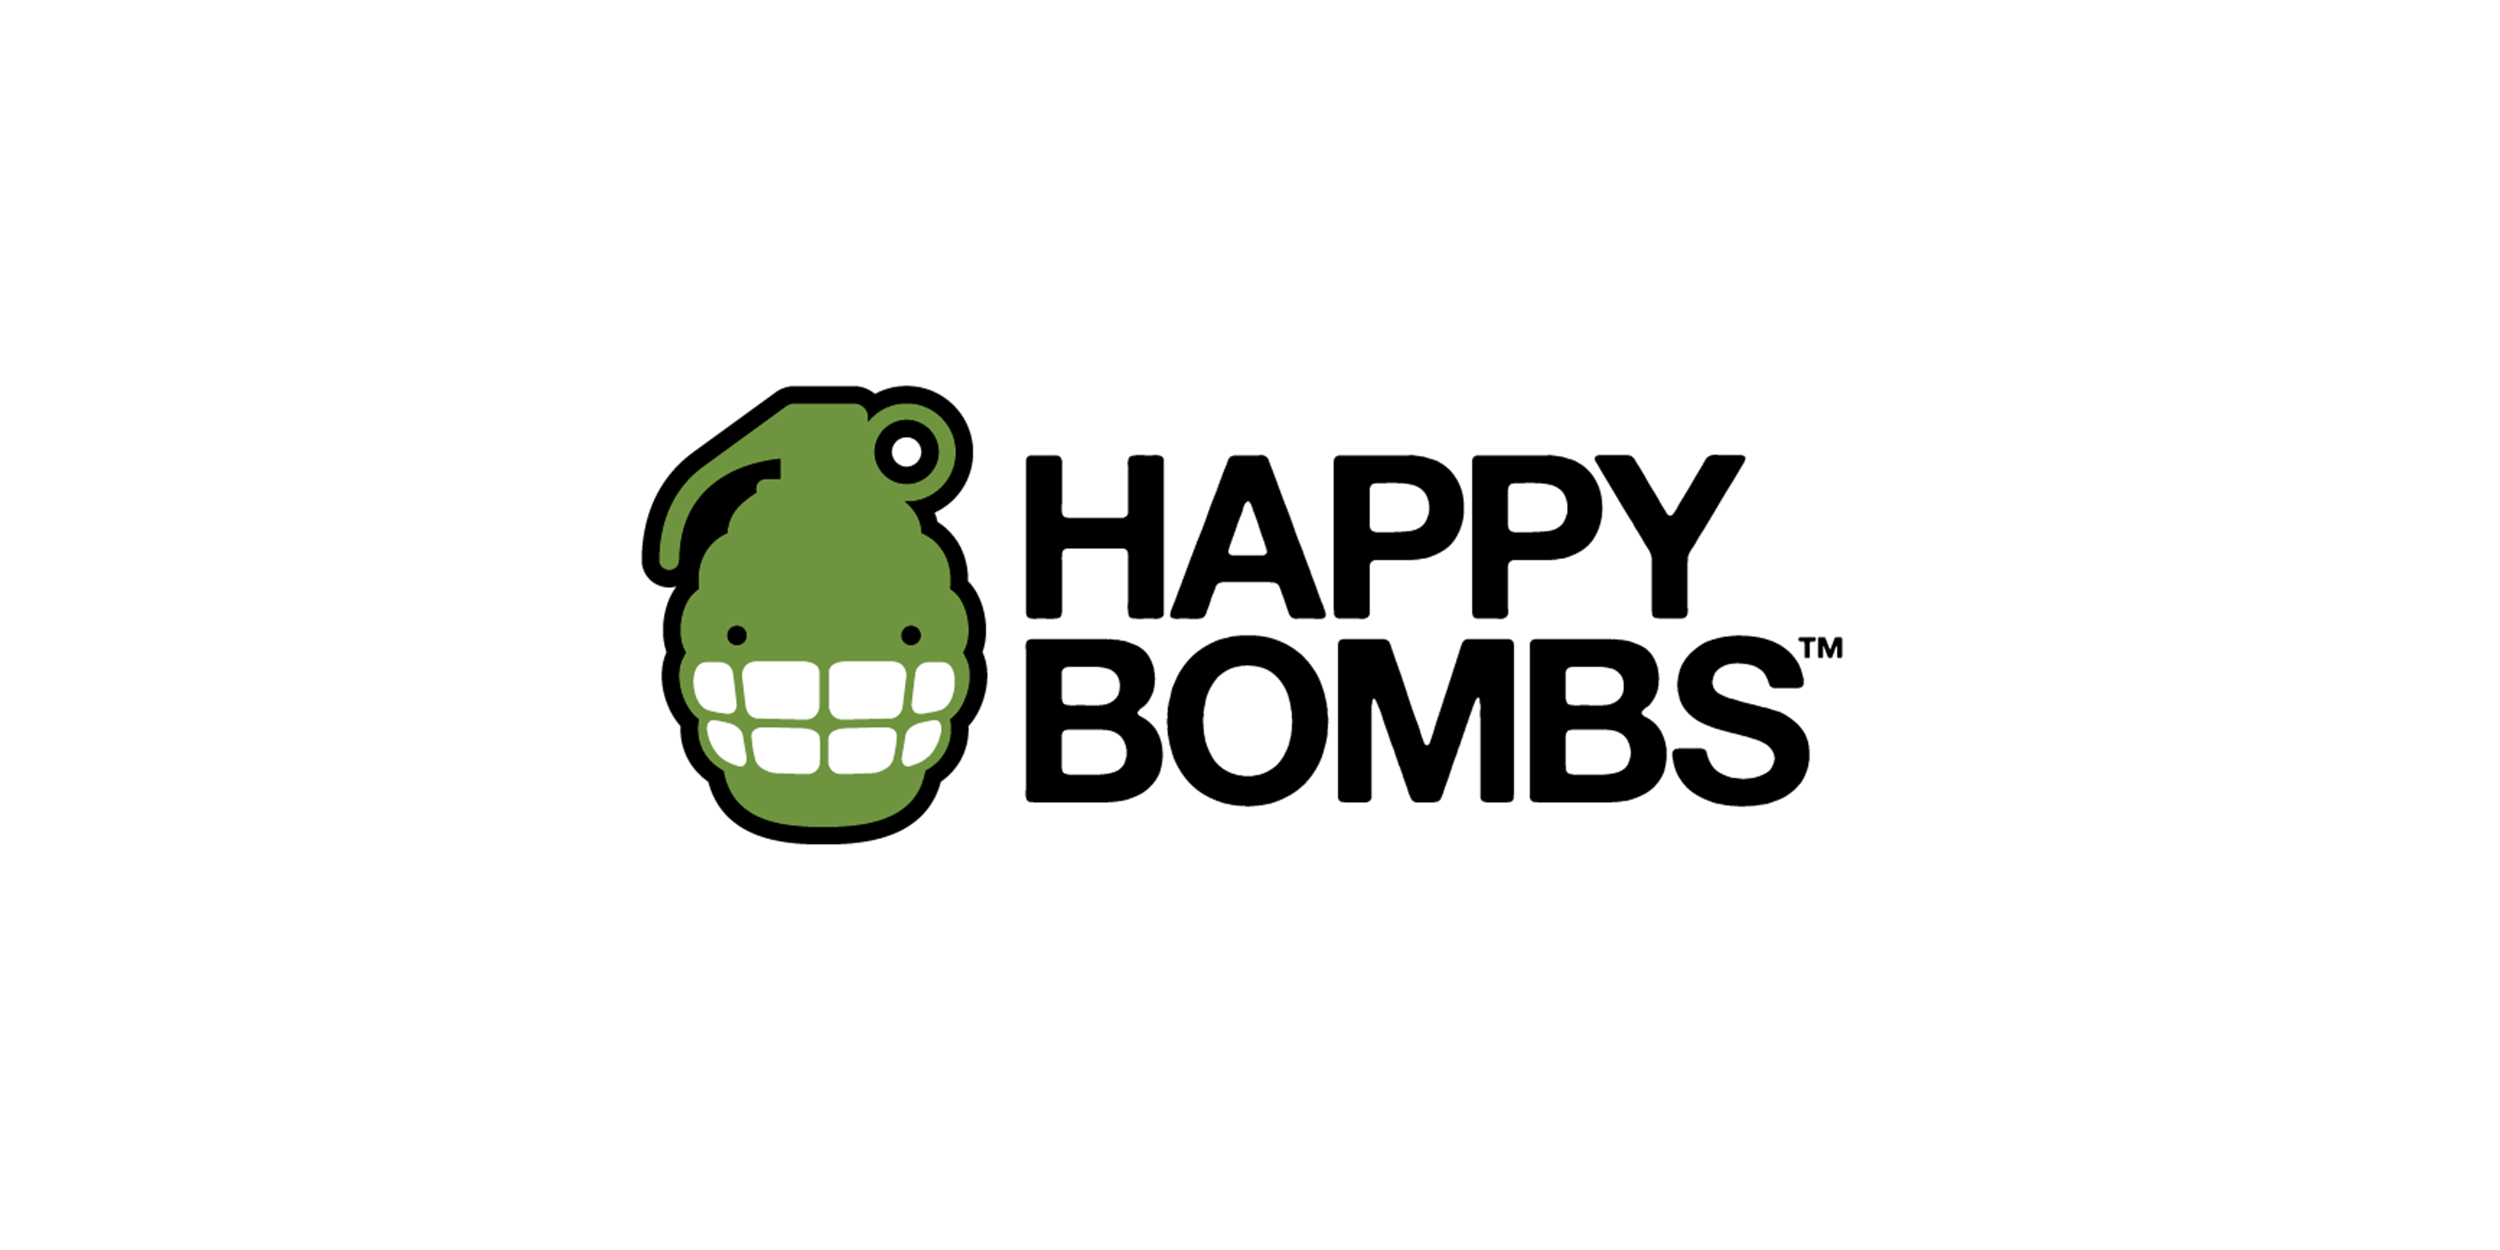 boom-happybombs-logo-slide.png